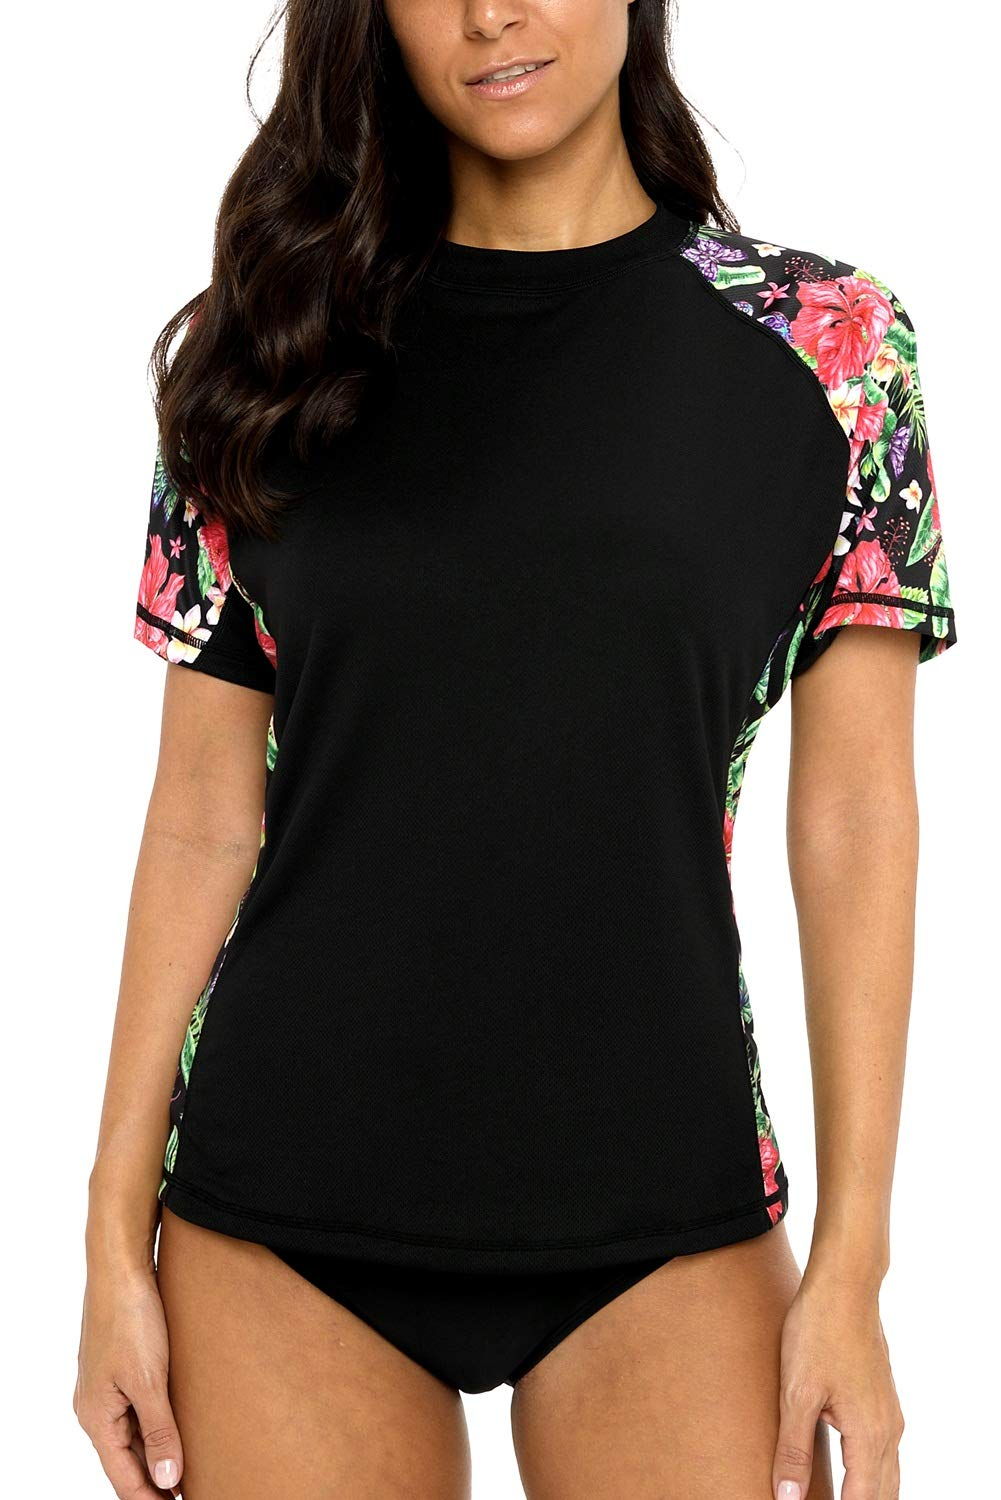 Vegatos Women Blask Swim Shirt Short Raglan Sleeve Rash Guards Floral Swimwear